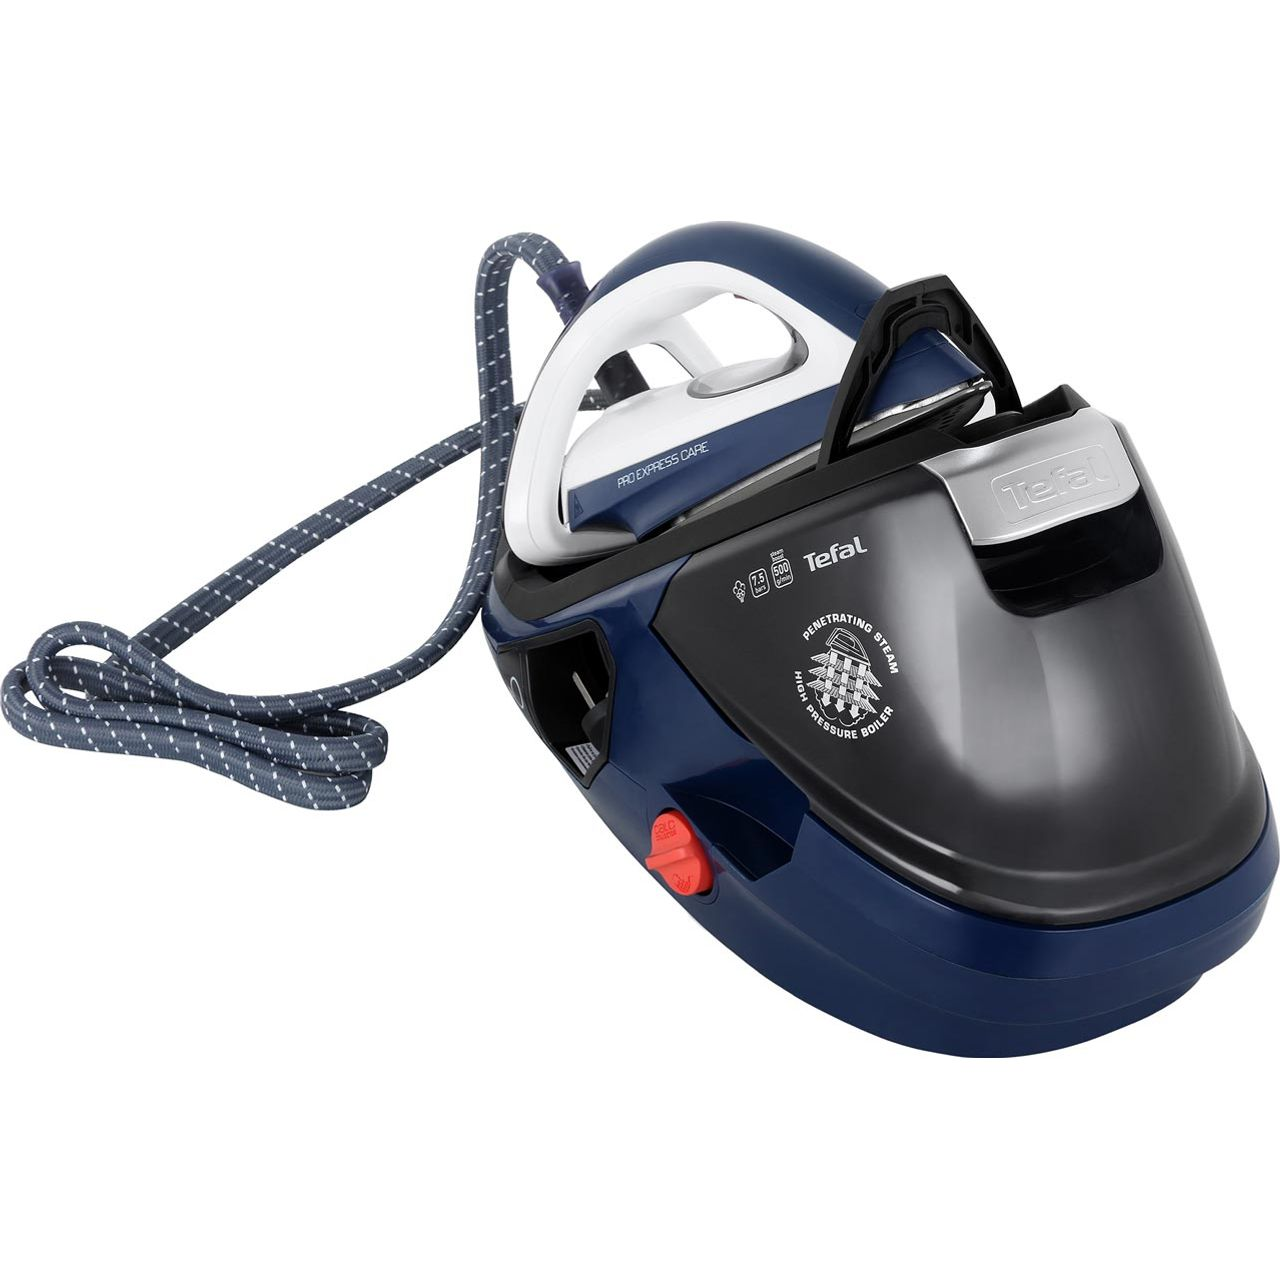 Tefal Pro Express Care Anti Scale Pressurised Steam Generator Iron - Blue / White